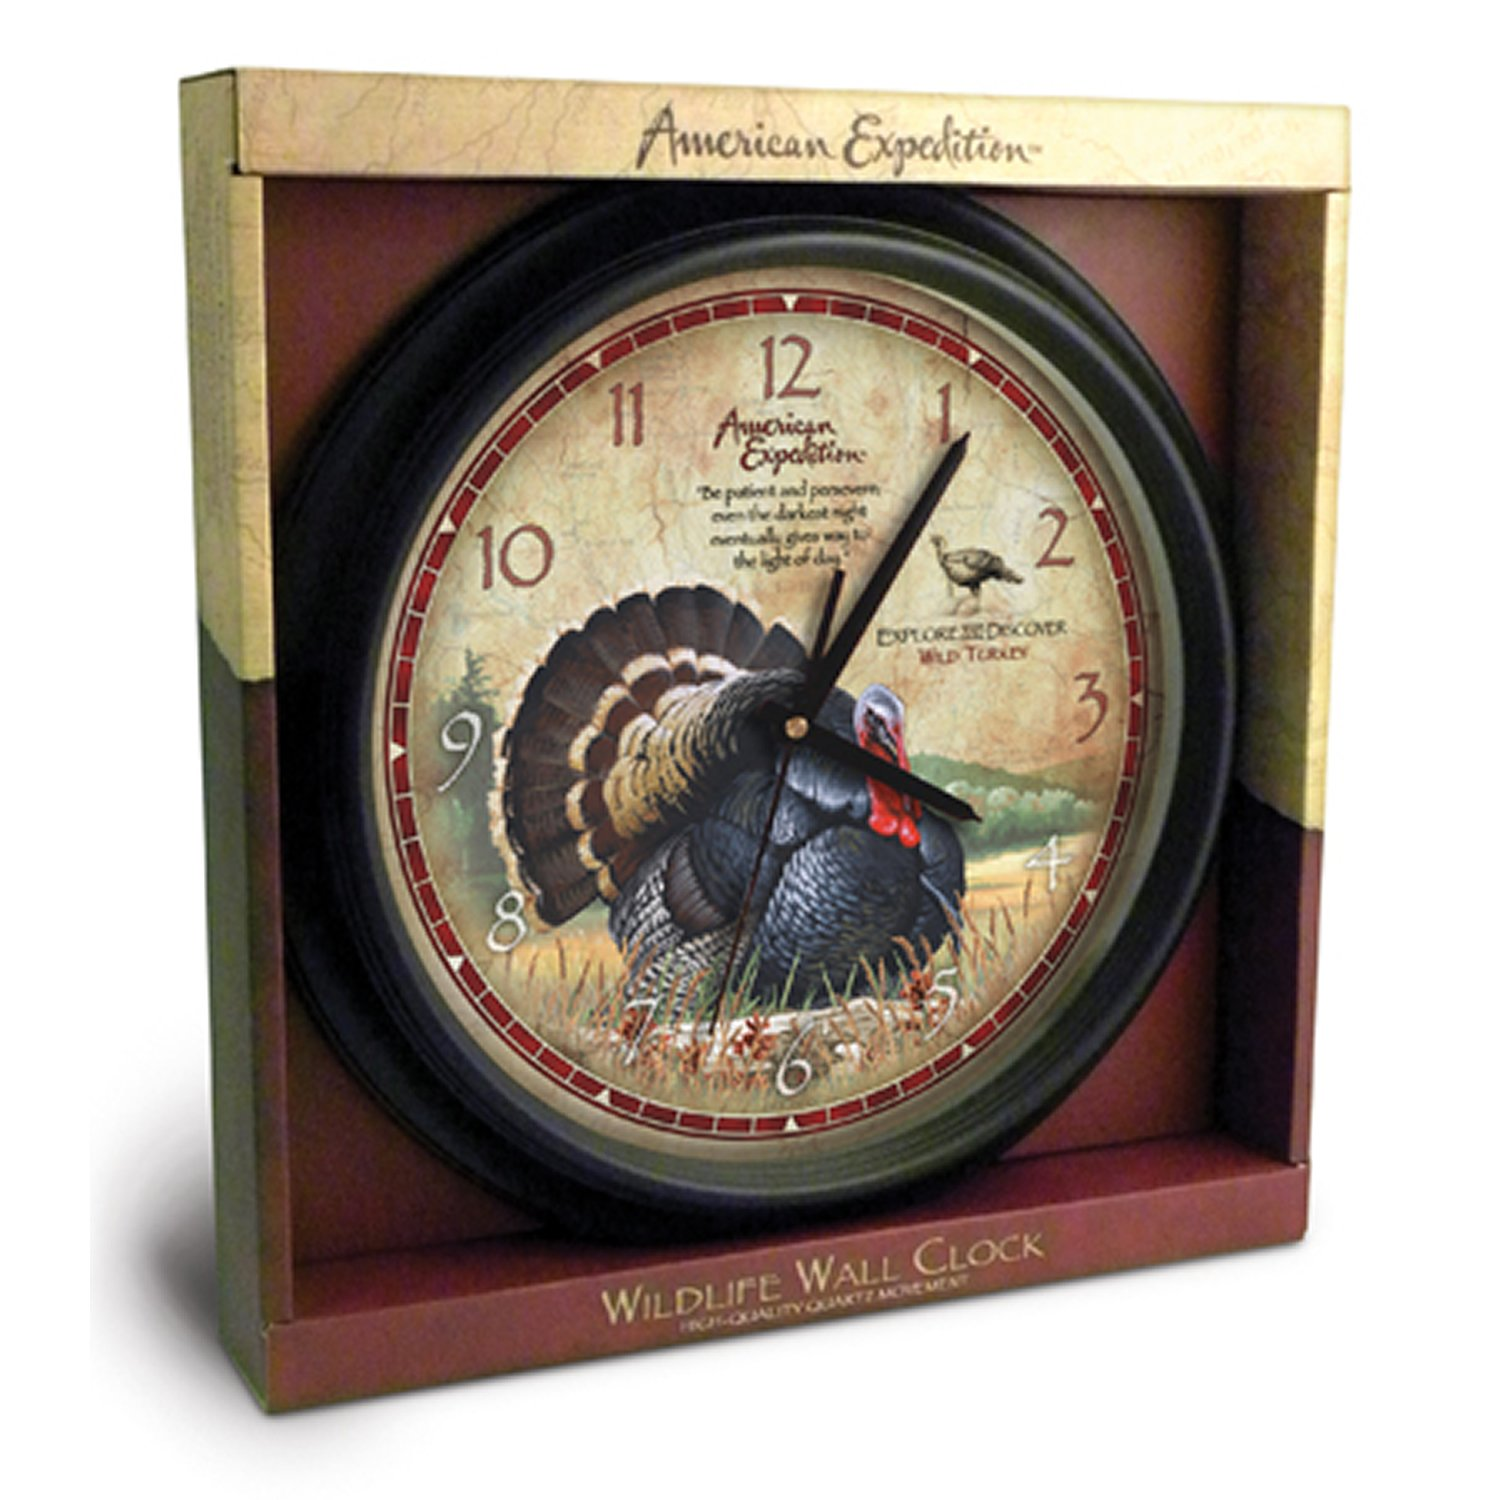 Wolf wall clock gallery home wall decoration ideas amazon american expedition wall clock bald eagle sports amazon american expedition wall clock bald eagle sports amipublicfo Gallery